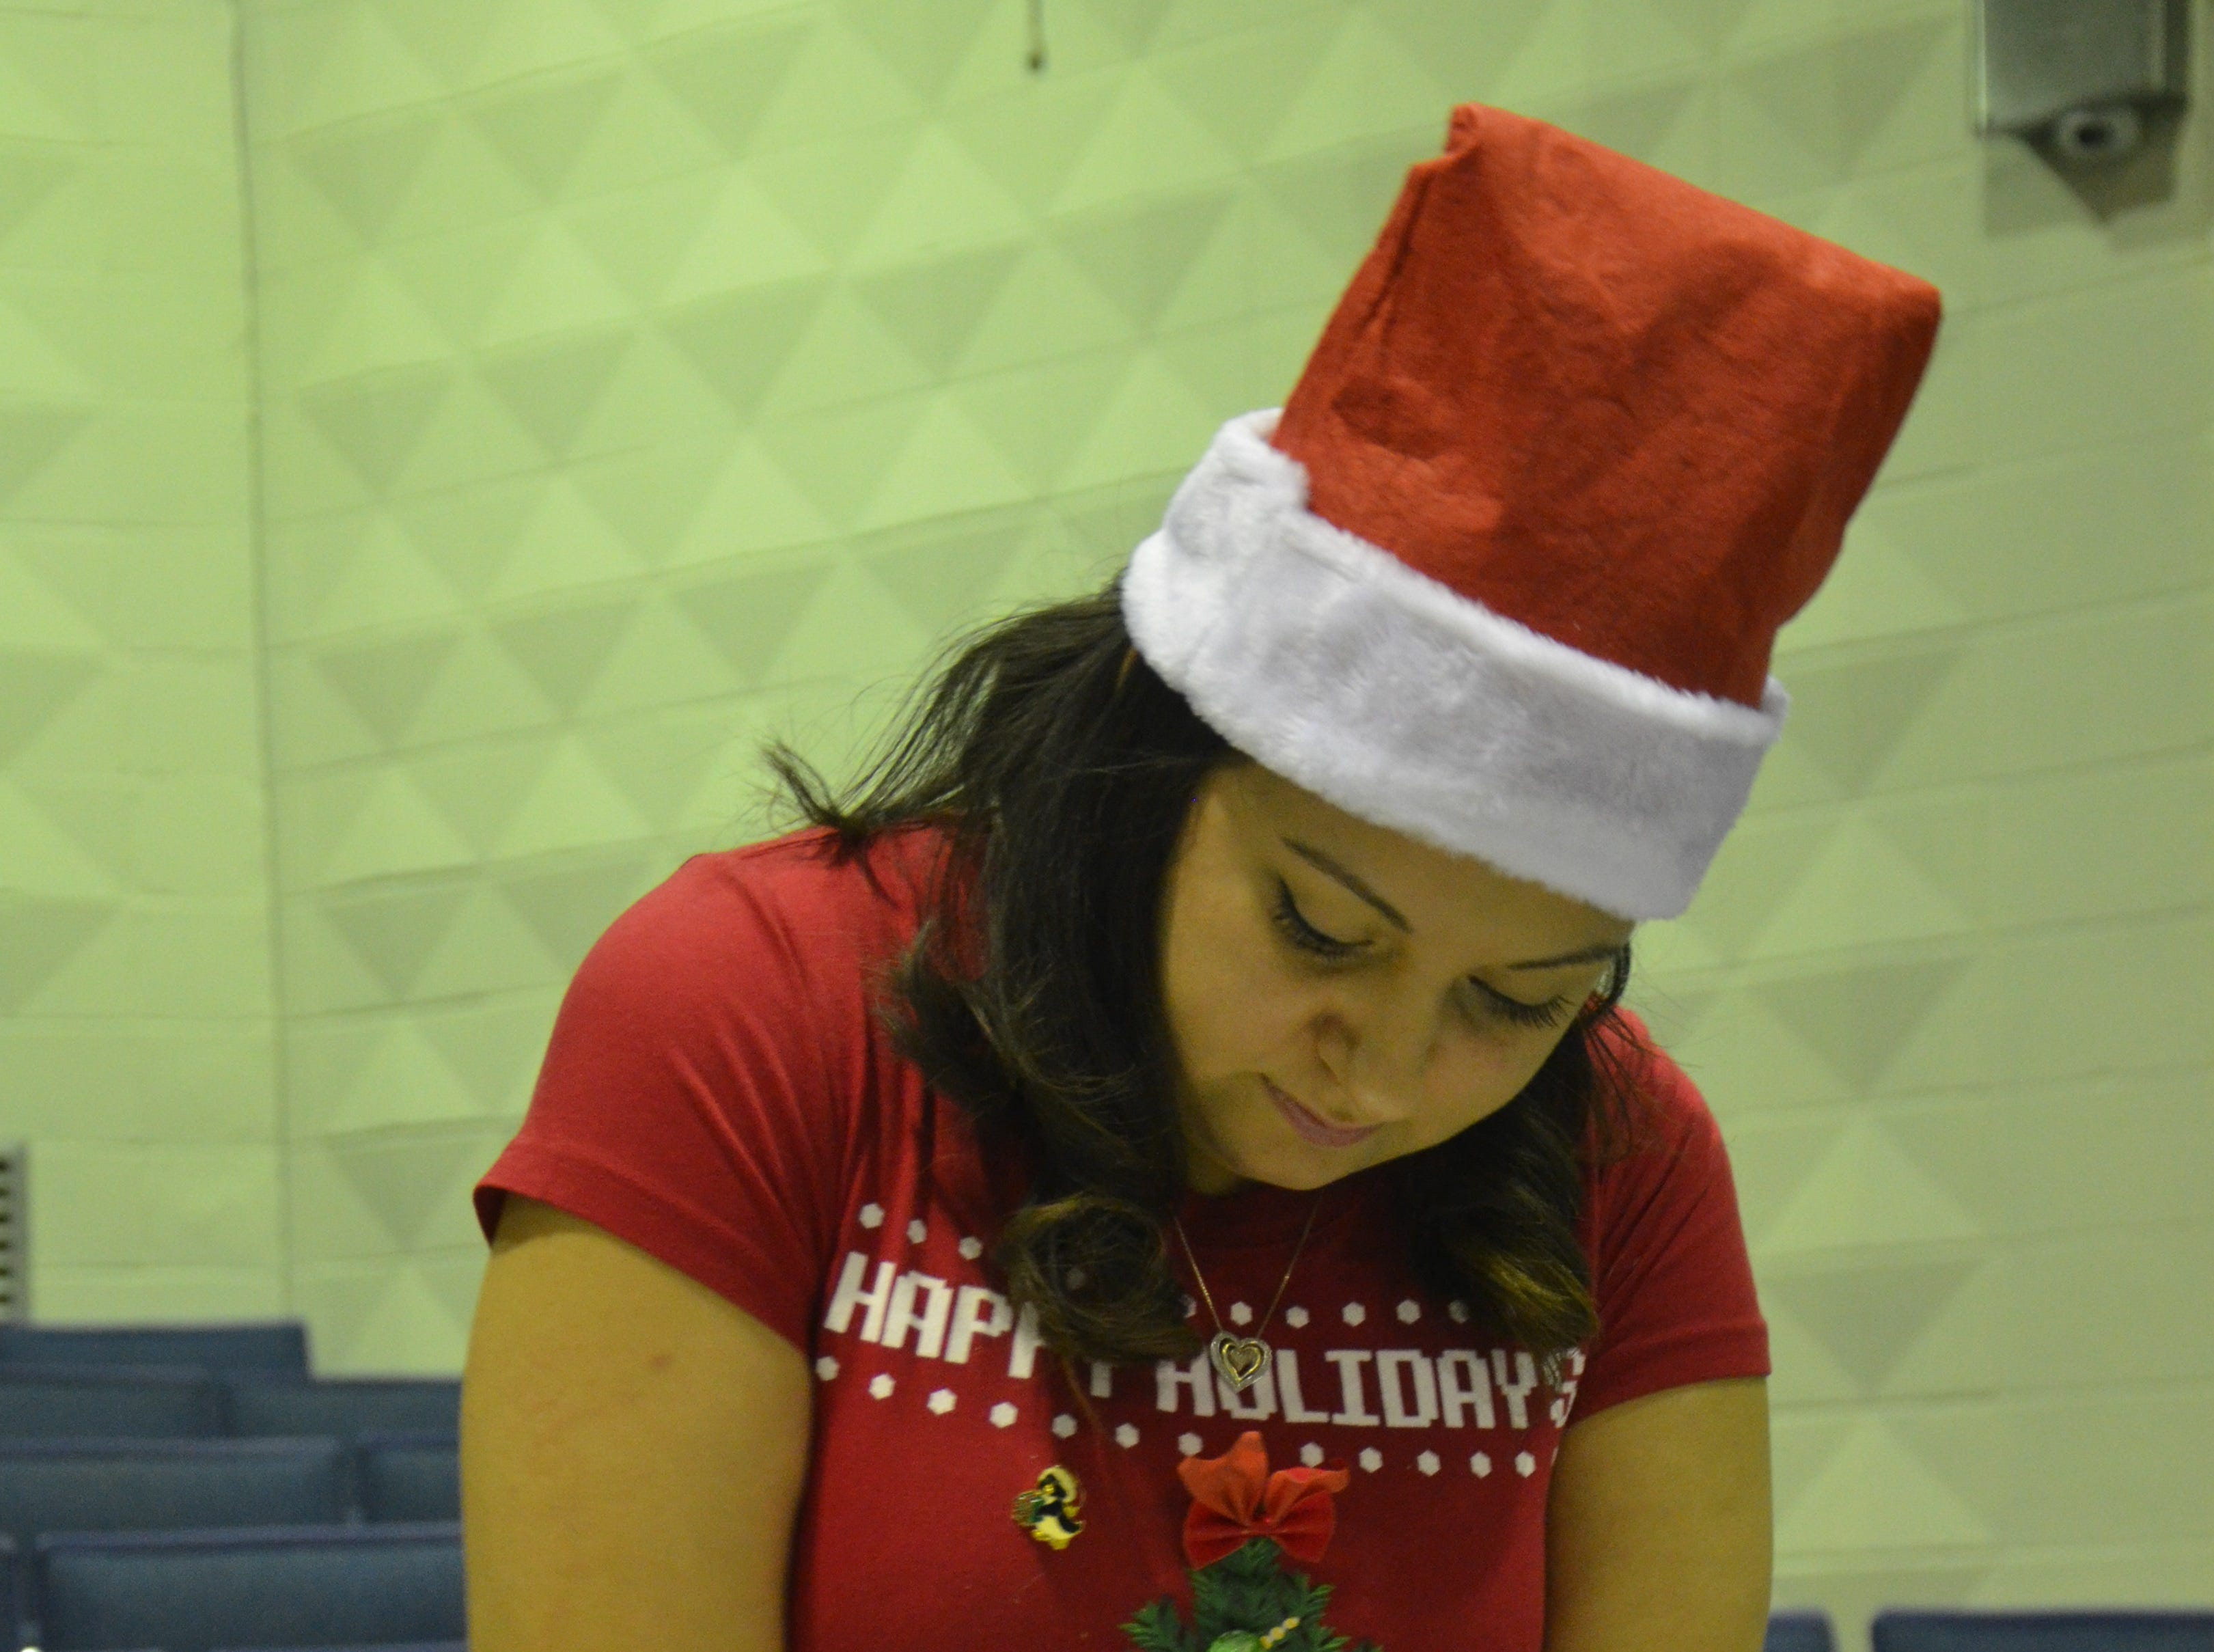 April Ortiz helped out to wrap presents on Friday. She is engaged to Danny Irons.